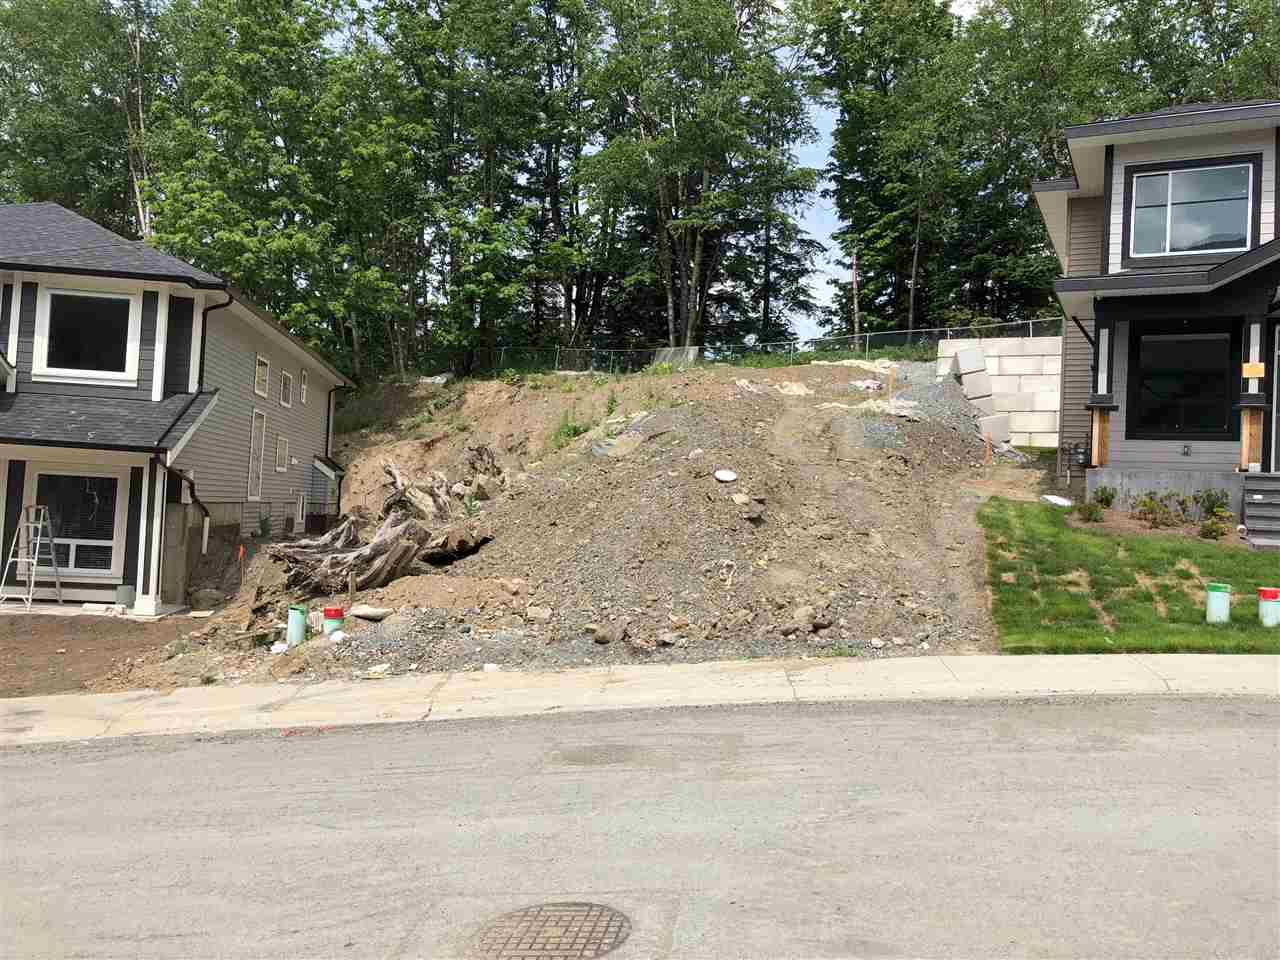 Most desirable area. Big lot and green belt on the back. Built your own fabulous 3 story dream home. Very easy access to hwy # 1. All houses in development already built. All amenities nearby. Plans and building permits are ready. Save time and money.